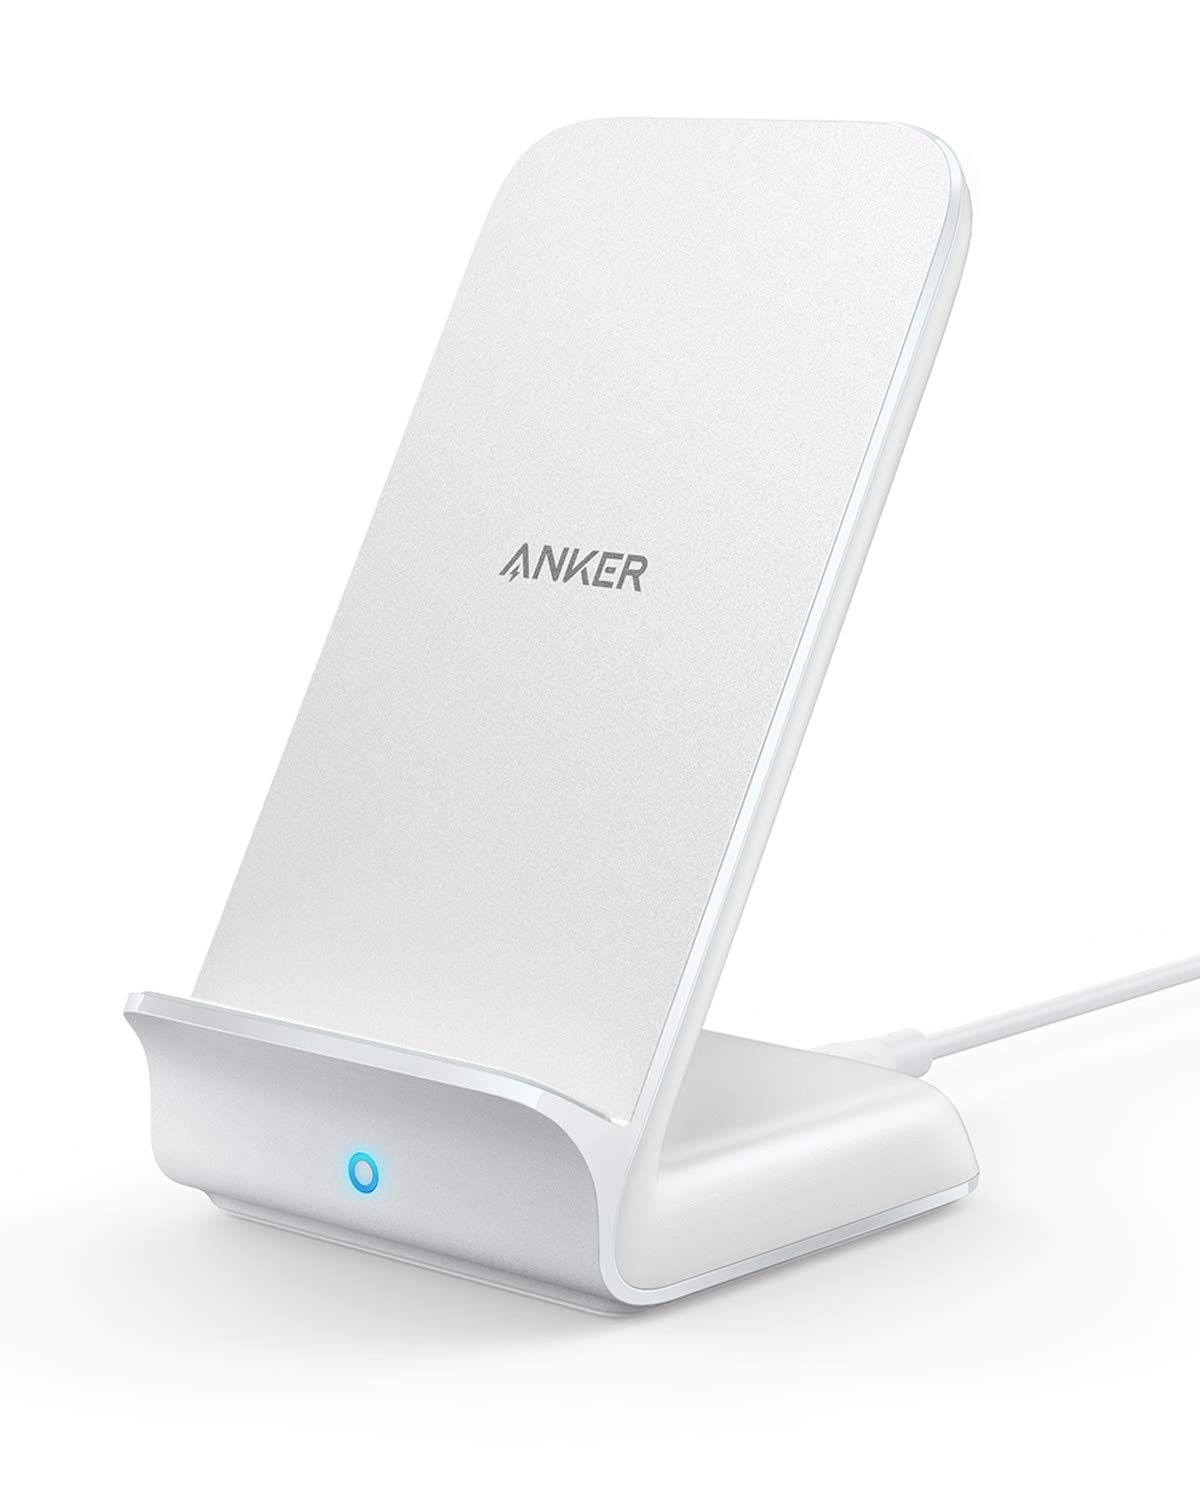 Anker PowerWave Fast Wireless Charger Stand, Qi-Certified, 7.5W Compatible iPhone XR/XS Max/XS/X/8/8 Plus, 10W Charges Galaxy S10/S9/S9+/S8+/Note 8, and 5W Charges All Qi-Enabled Phones(No AC Adapter)